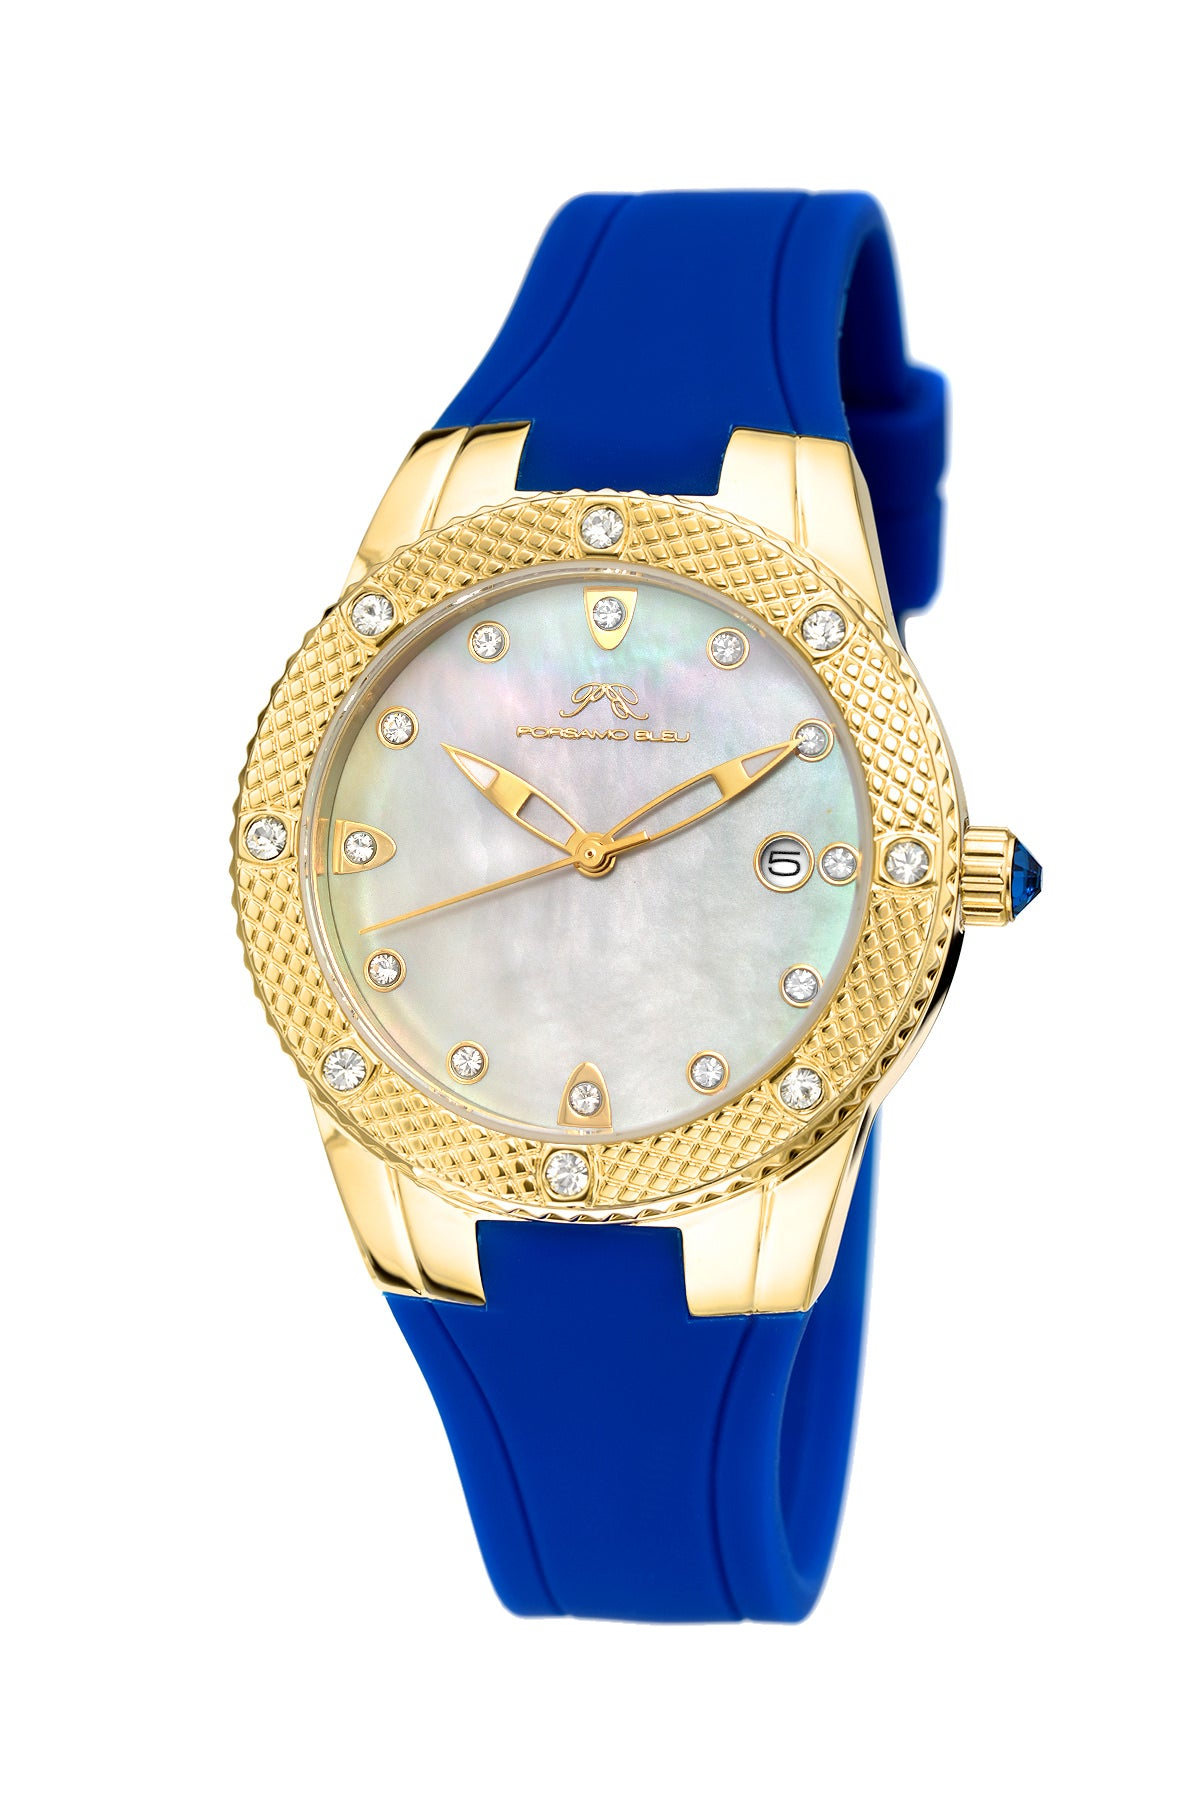 Porsamo Bleu Linda luxury women's watch, silicone strap, gold, blue 492BLIR